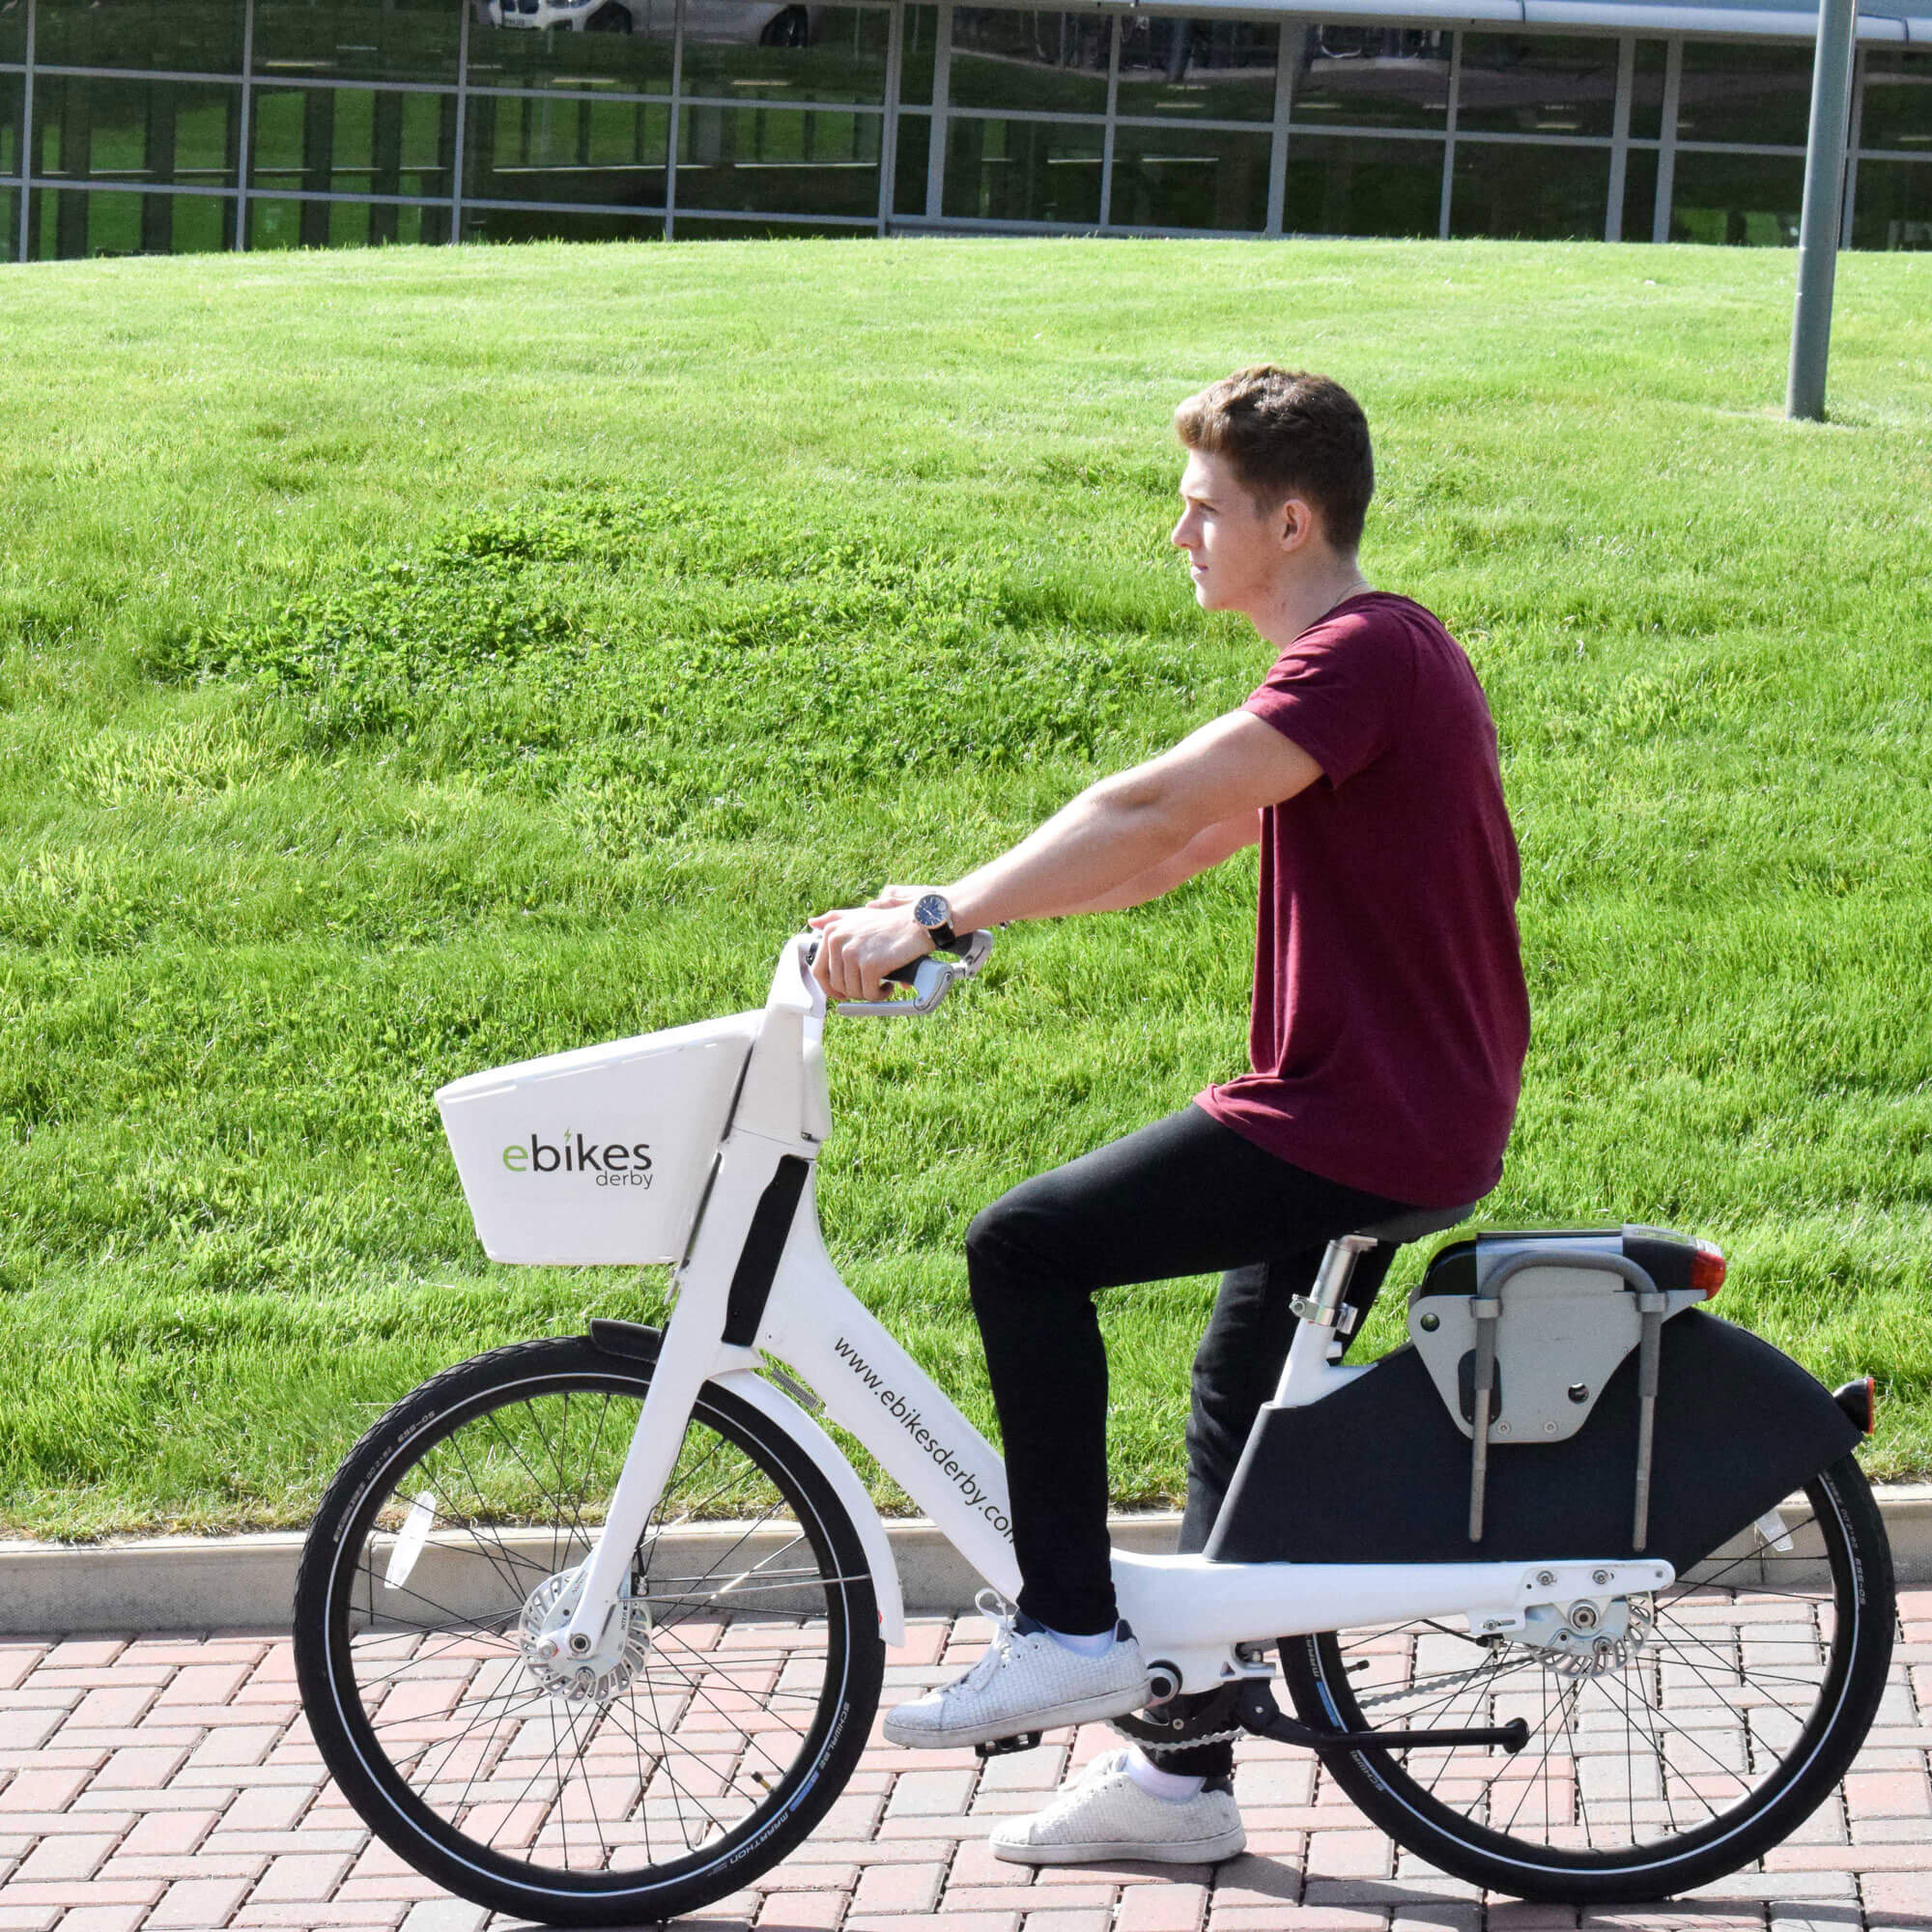 A student on an ebike on campus